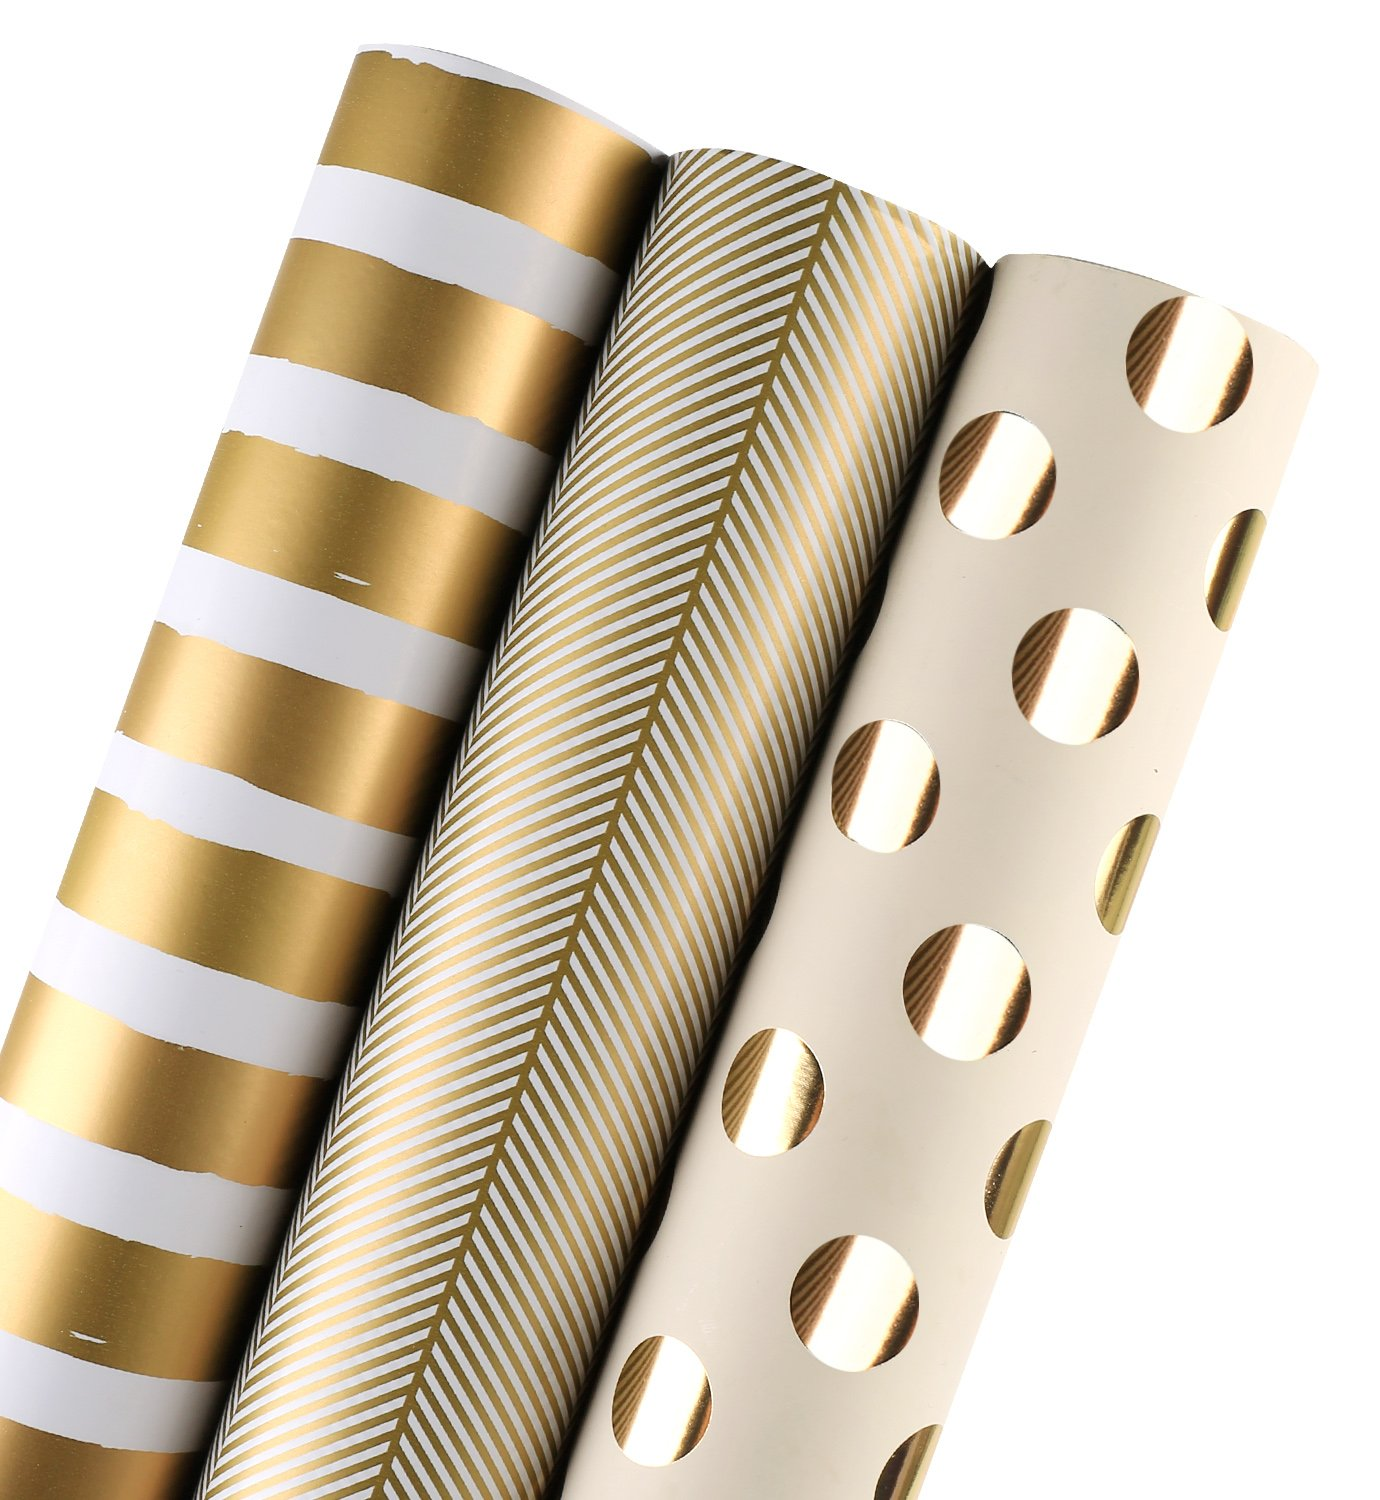 LaRibbons Gift Wrapping Paper Roll - Gold Print for Birthday, Holiday, Wedding, Baby Shower Gift Wrap - 3 Rolls - 30 inch X 120 inch Per Roll